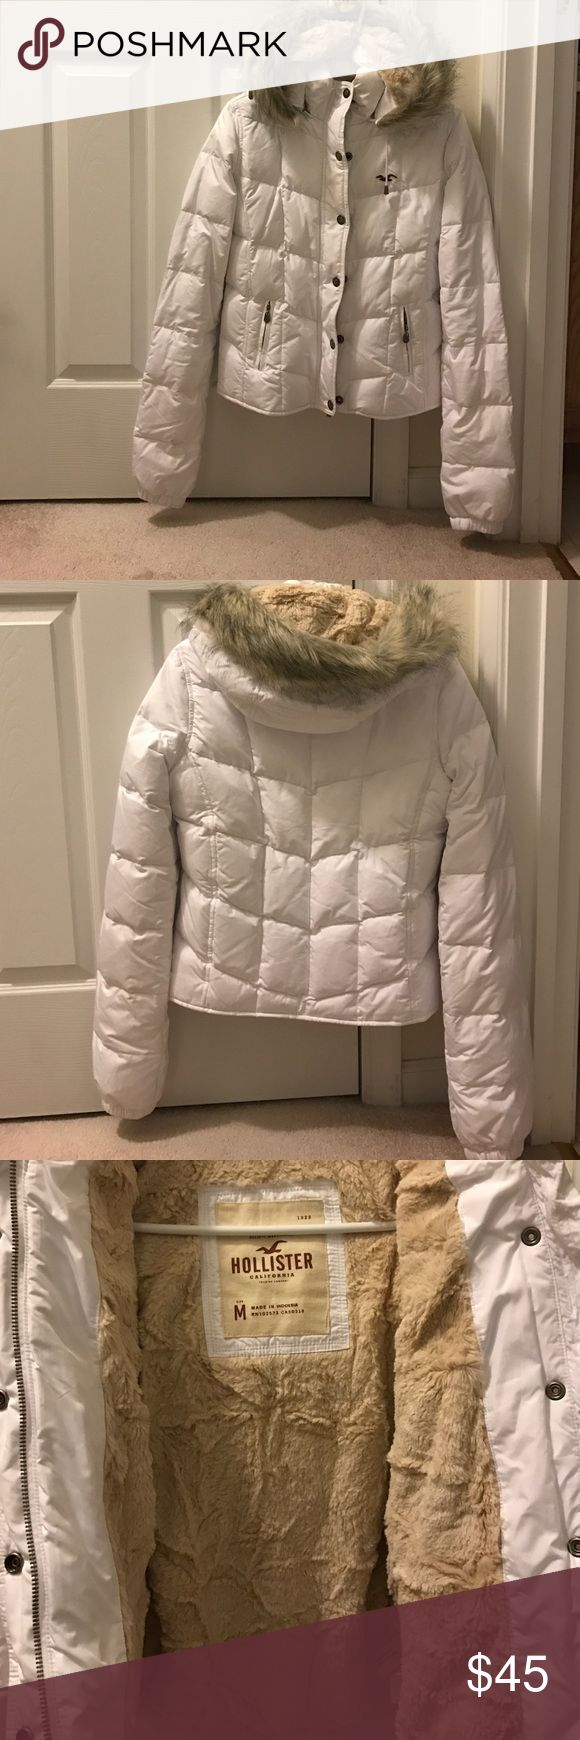 Hollister Jacket Lightly used, does have some small stains on the collar (not very noticeable) Hollister Jackets & Coats Puffers